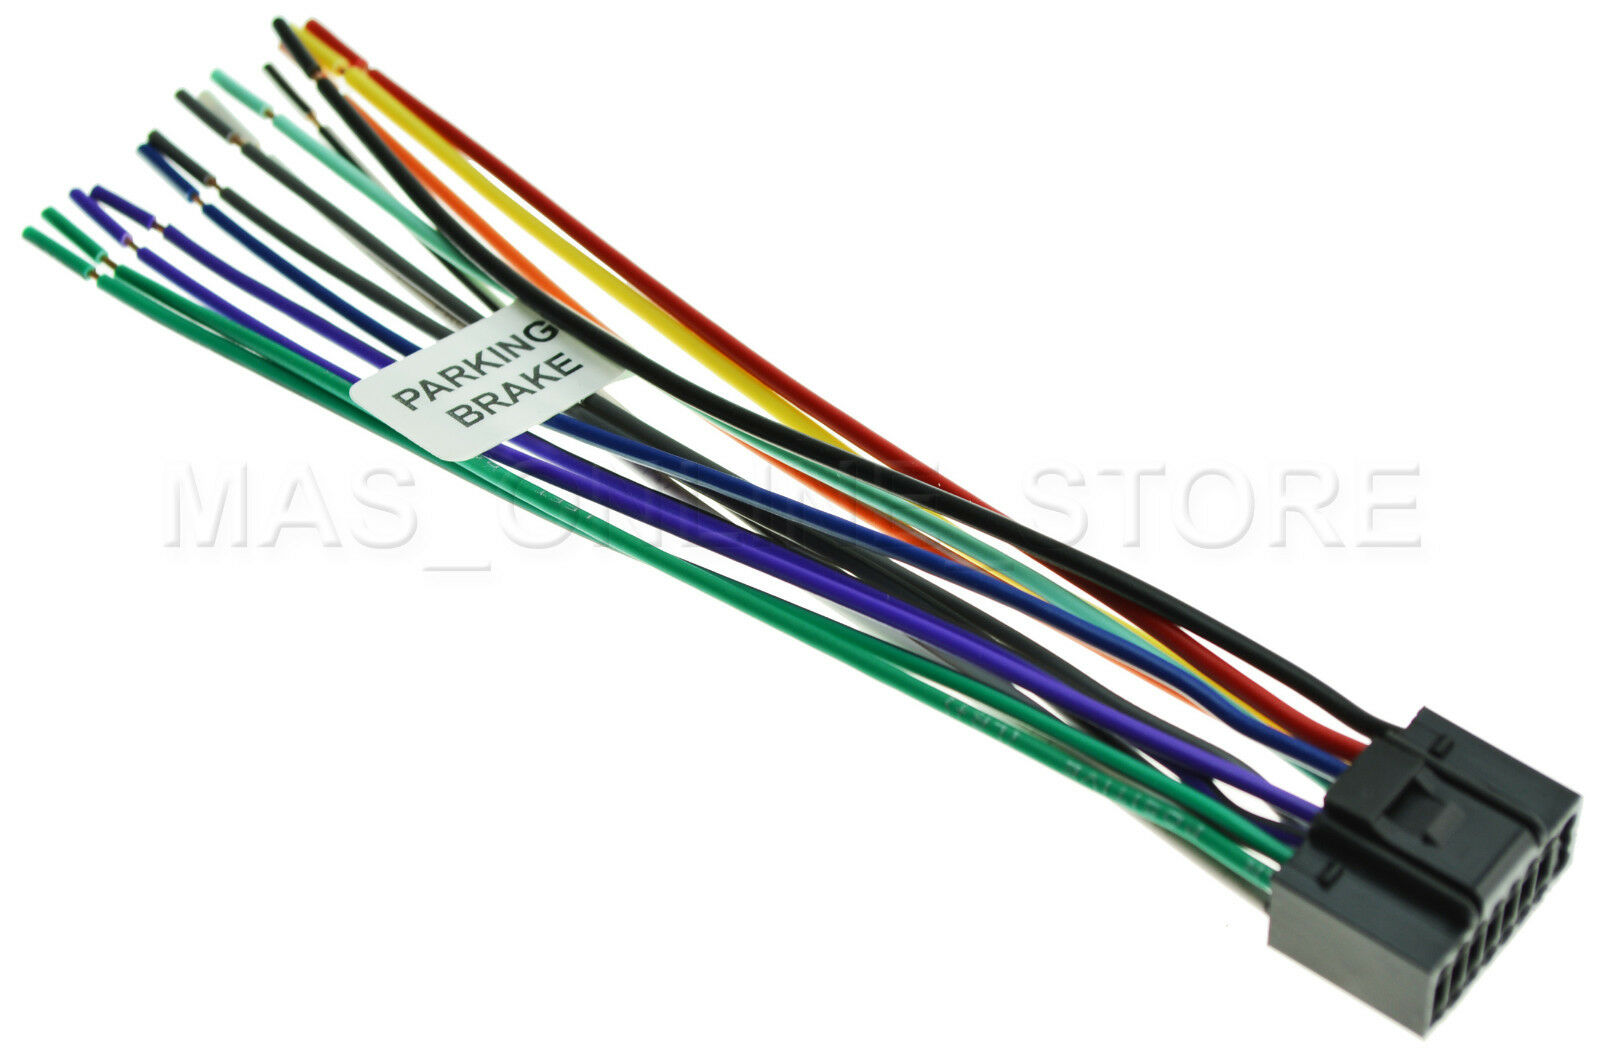 Jvc Wiring Harness Ebay Schematic Diagram Kd R320 Wire For Kw Adv792 Kwadv792 Pay Today Ships Sony Car Stereo Colors